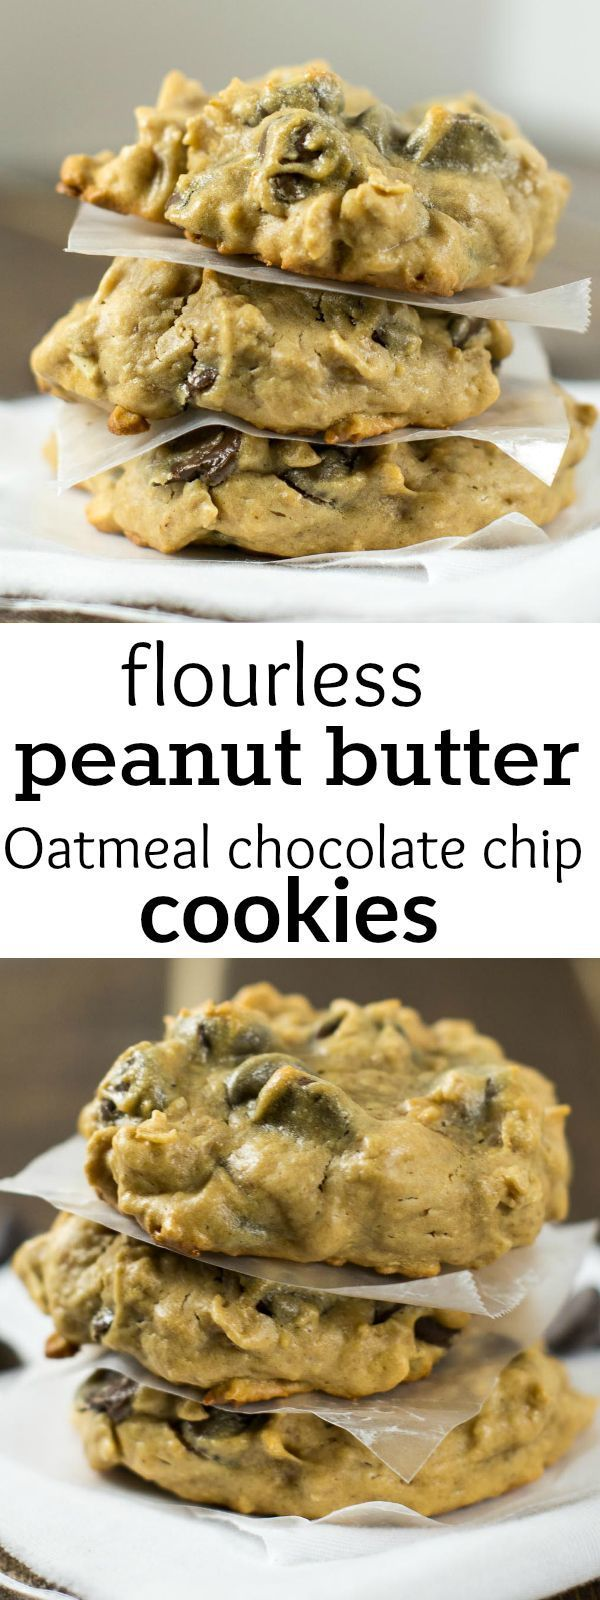 Flourless Peanut Butter Peanut Butter Oatmeal Chocolate Chip Cookies (Gluten Free)